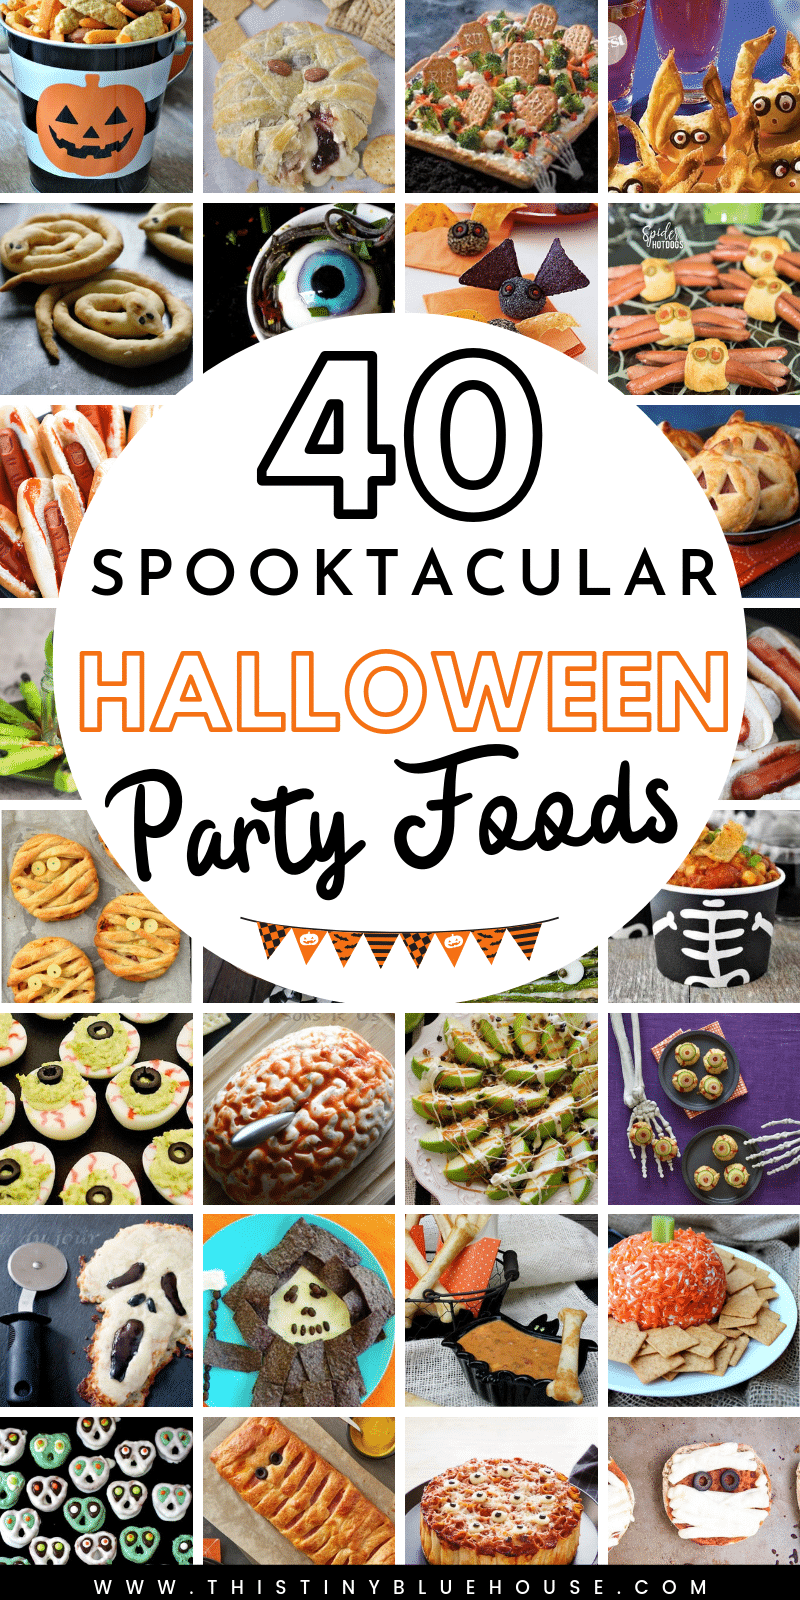 Here are over 40 best Halloween party finger foods and appetizer ideas. If you are hosting a Halloween party or are looking for a few spooky dishes to make Halloween extra special these recipes are a must try. #halloweenfoods #halloweenfoodideas #halloweenfingerfoods #halloweenfoodsforpotluck #halloweenfingerfoodideasforkids #easyhalloweenfoodideas #halloweenappetizers